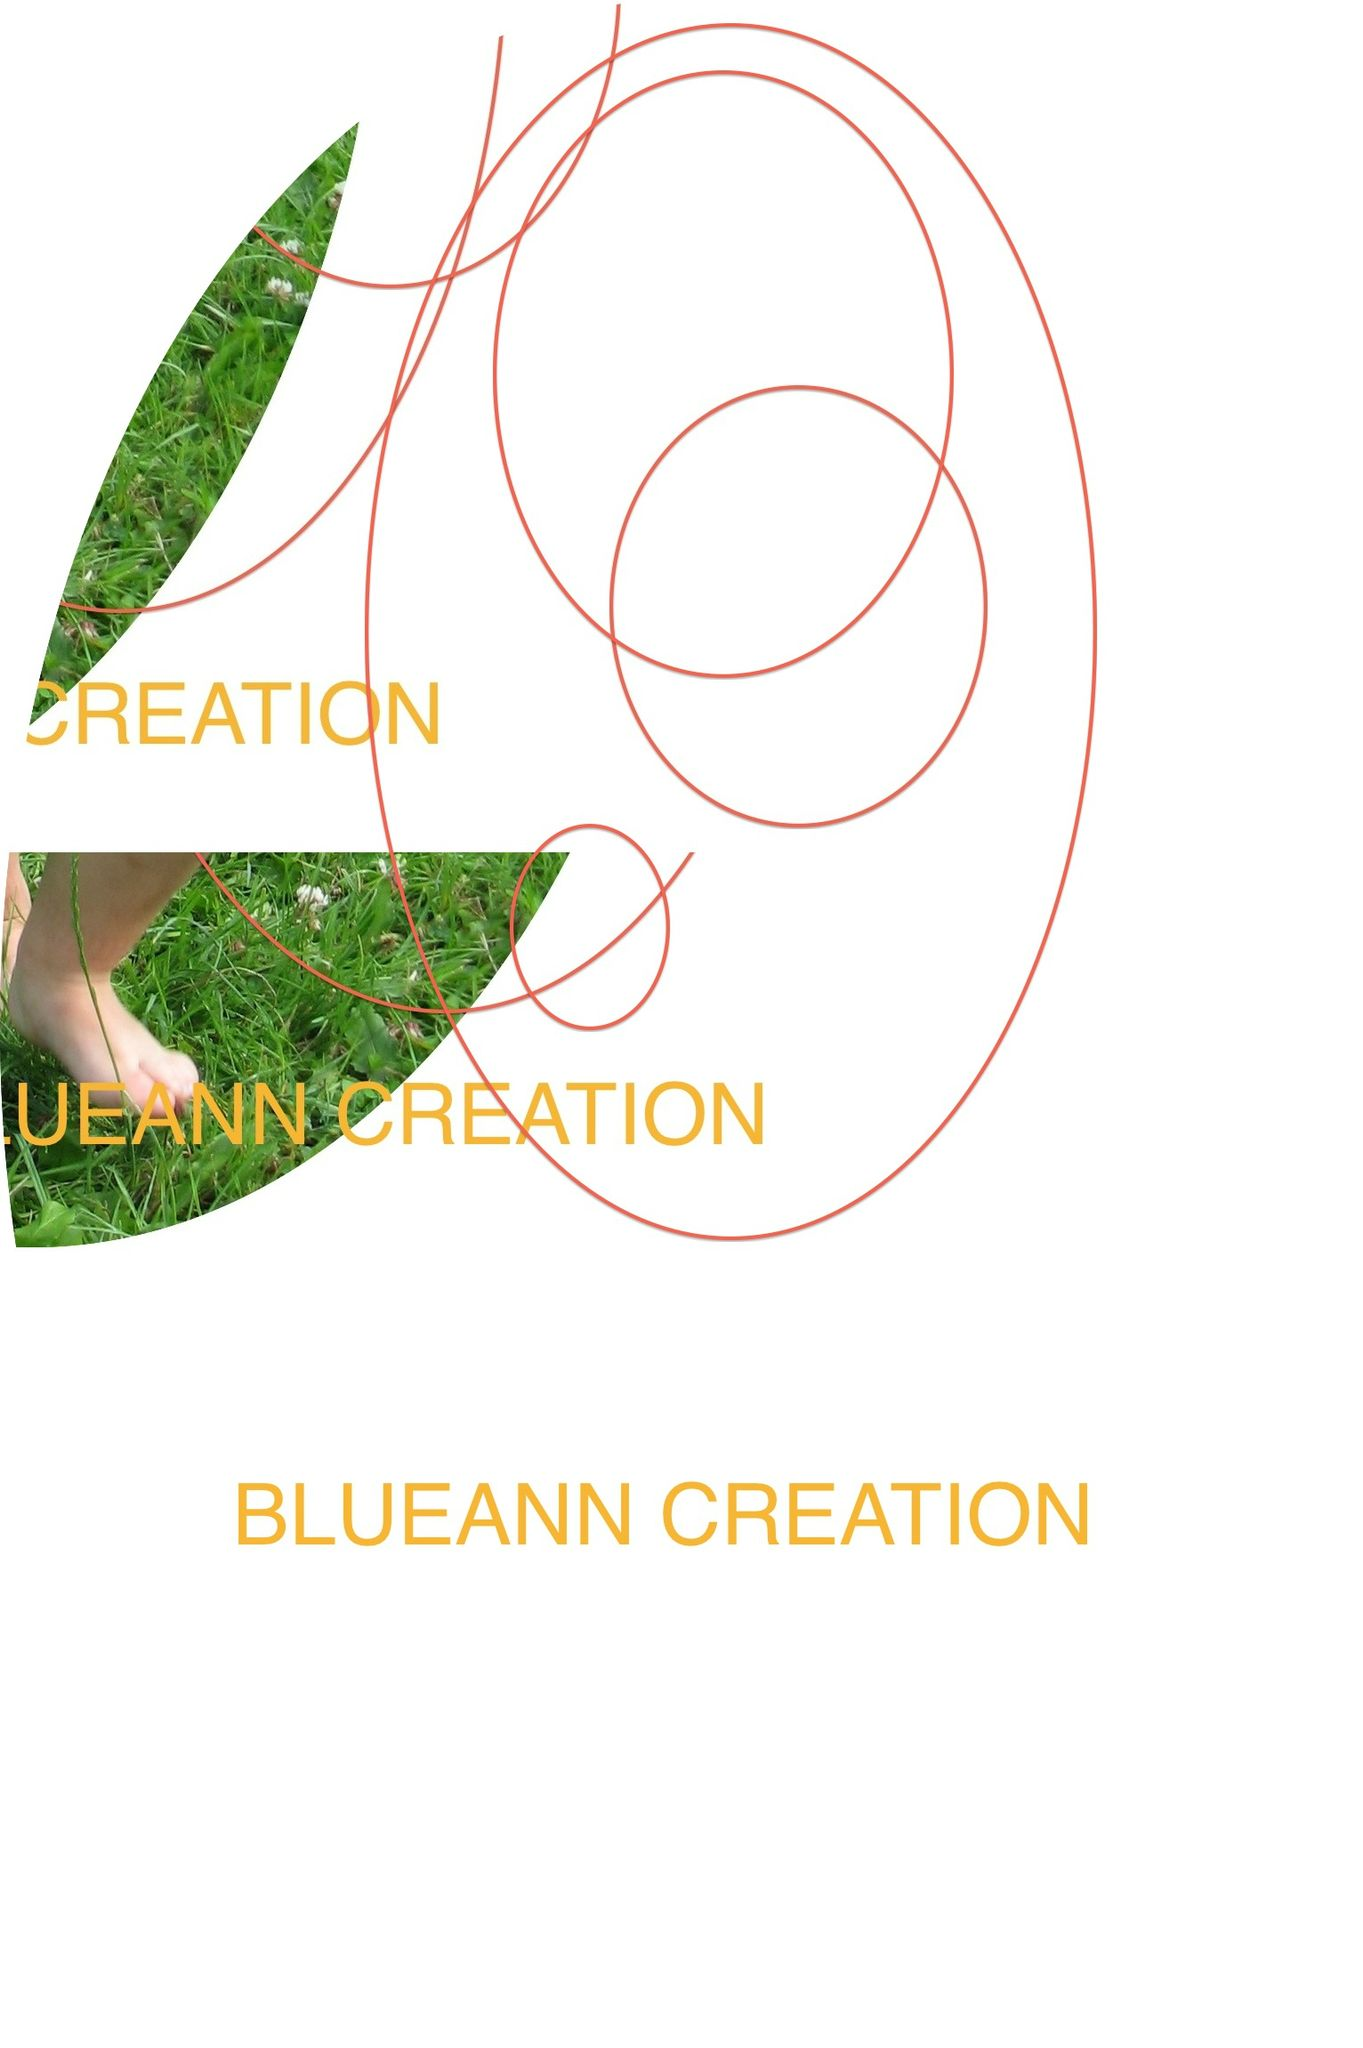 ac bertiile pour blueann creation